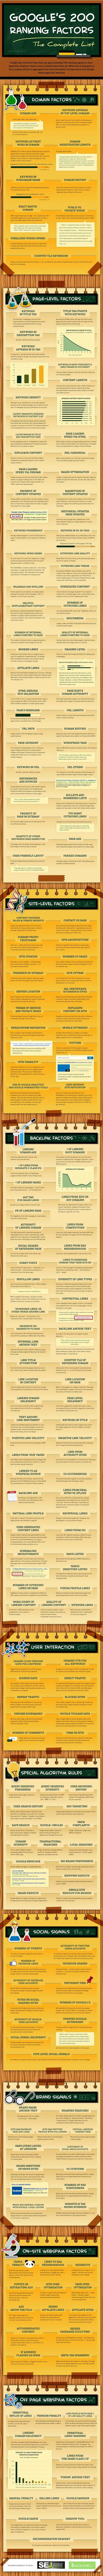 Google's 200 Ranking Factors. The Complete List #Infographic | ten Hagen on Social Media | Scoop.it